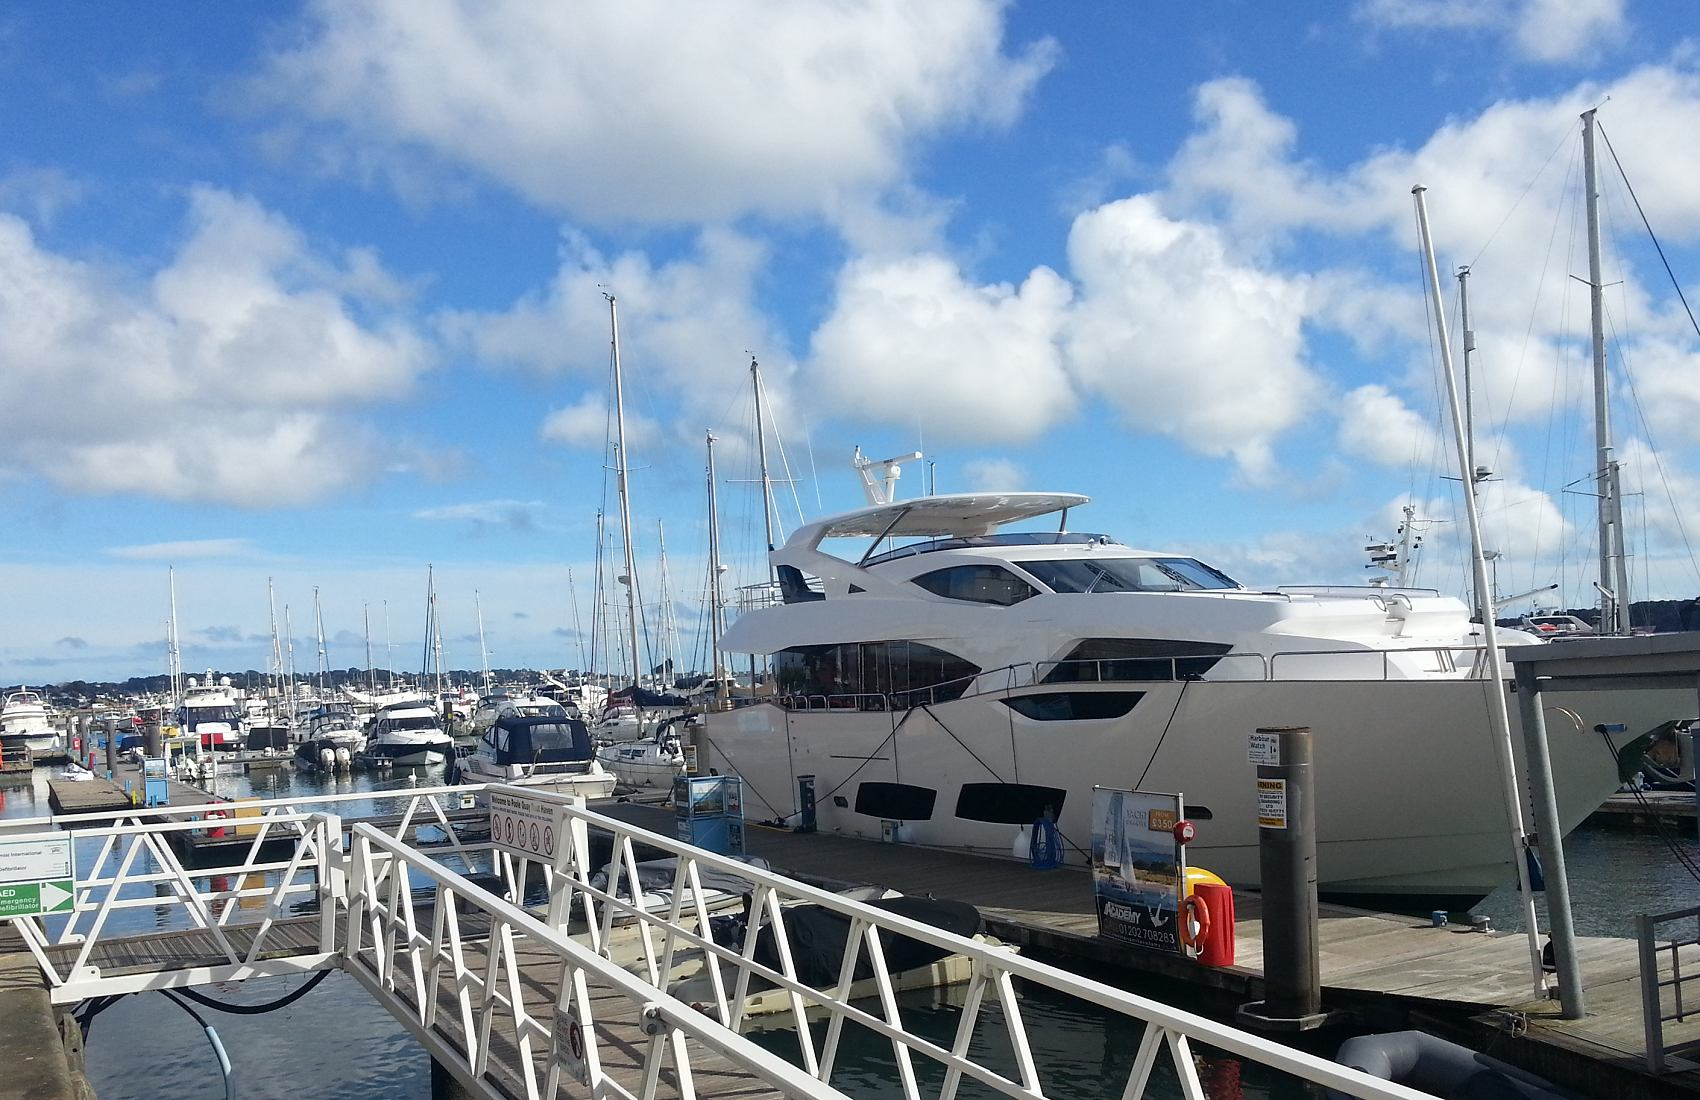 View of Poole Marina Superyacht Berths